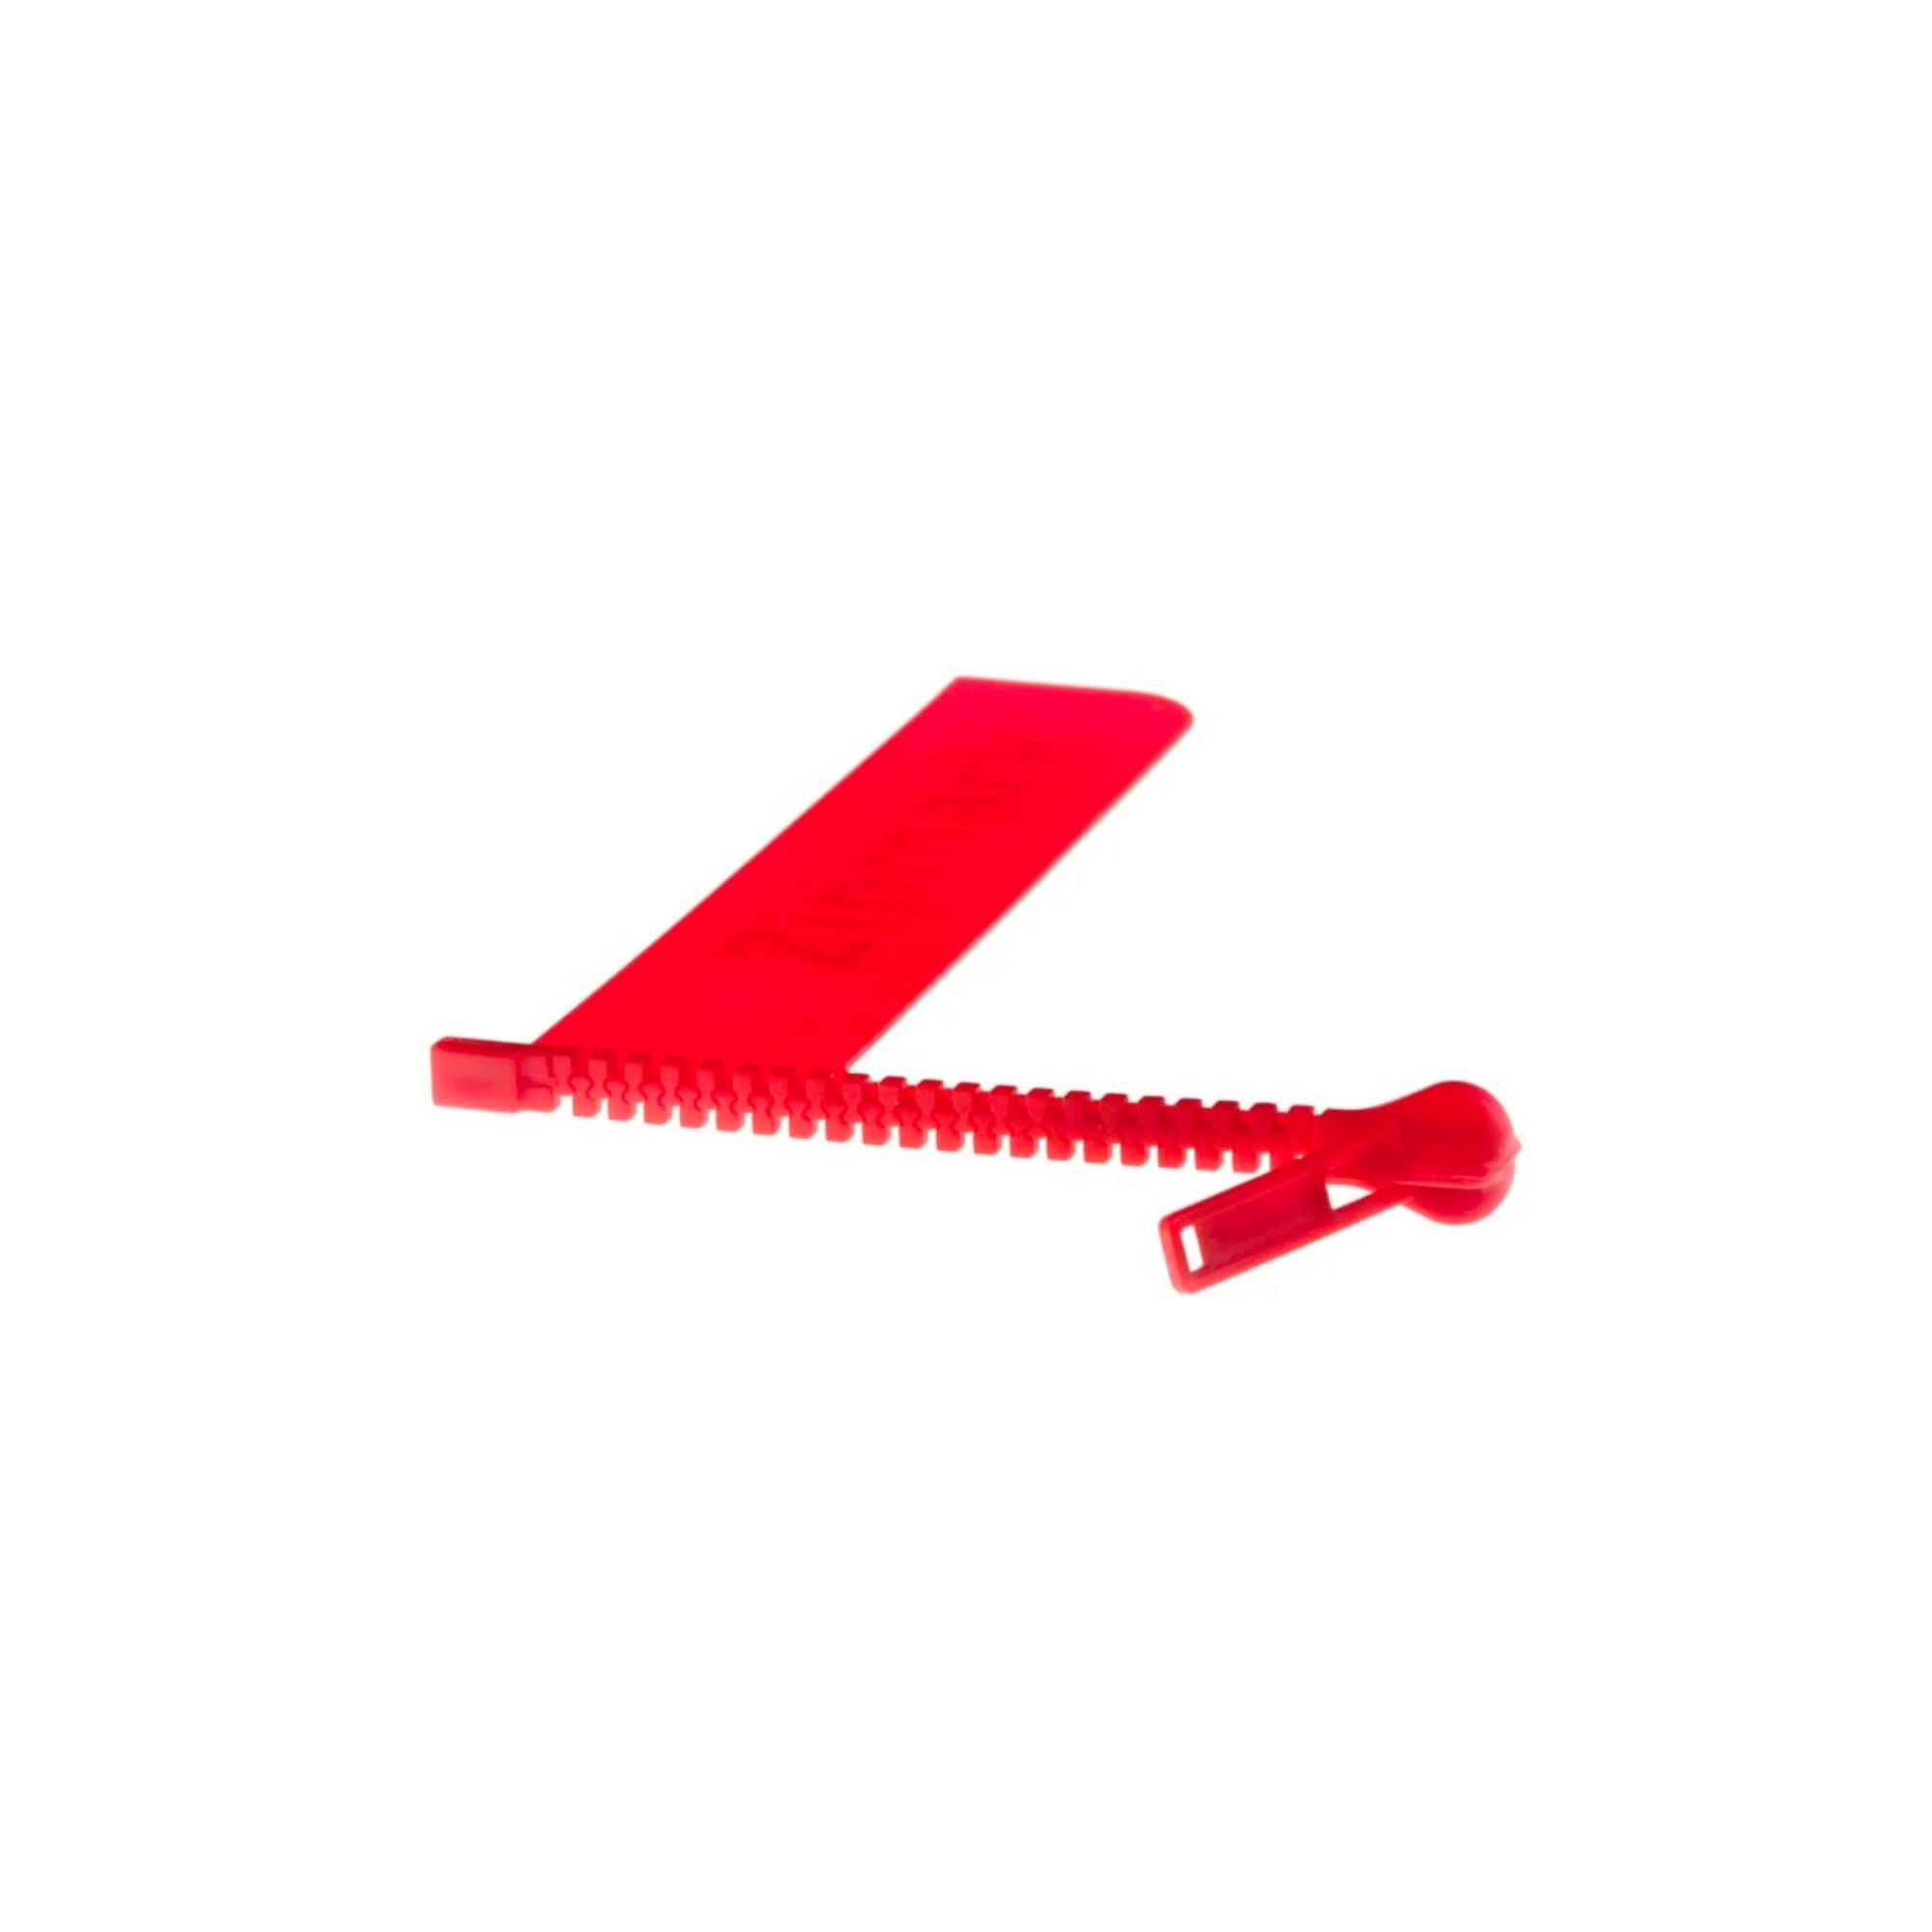 Zipmark bookmark, red